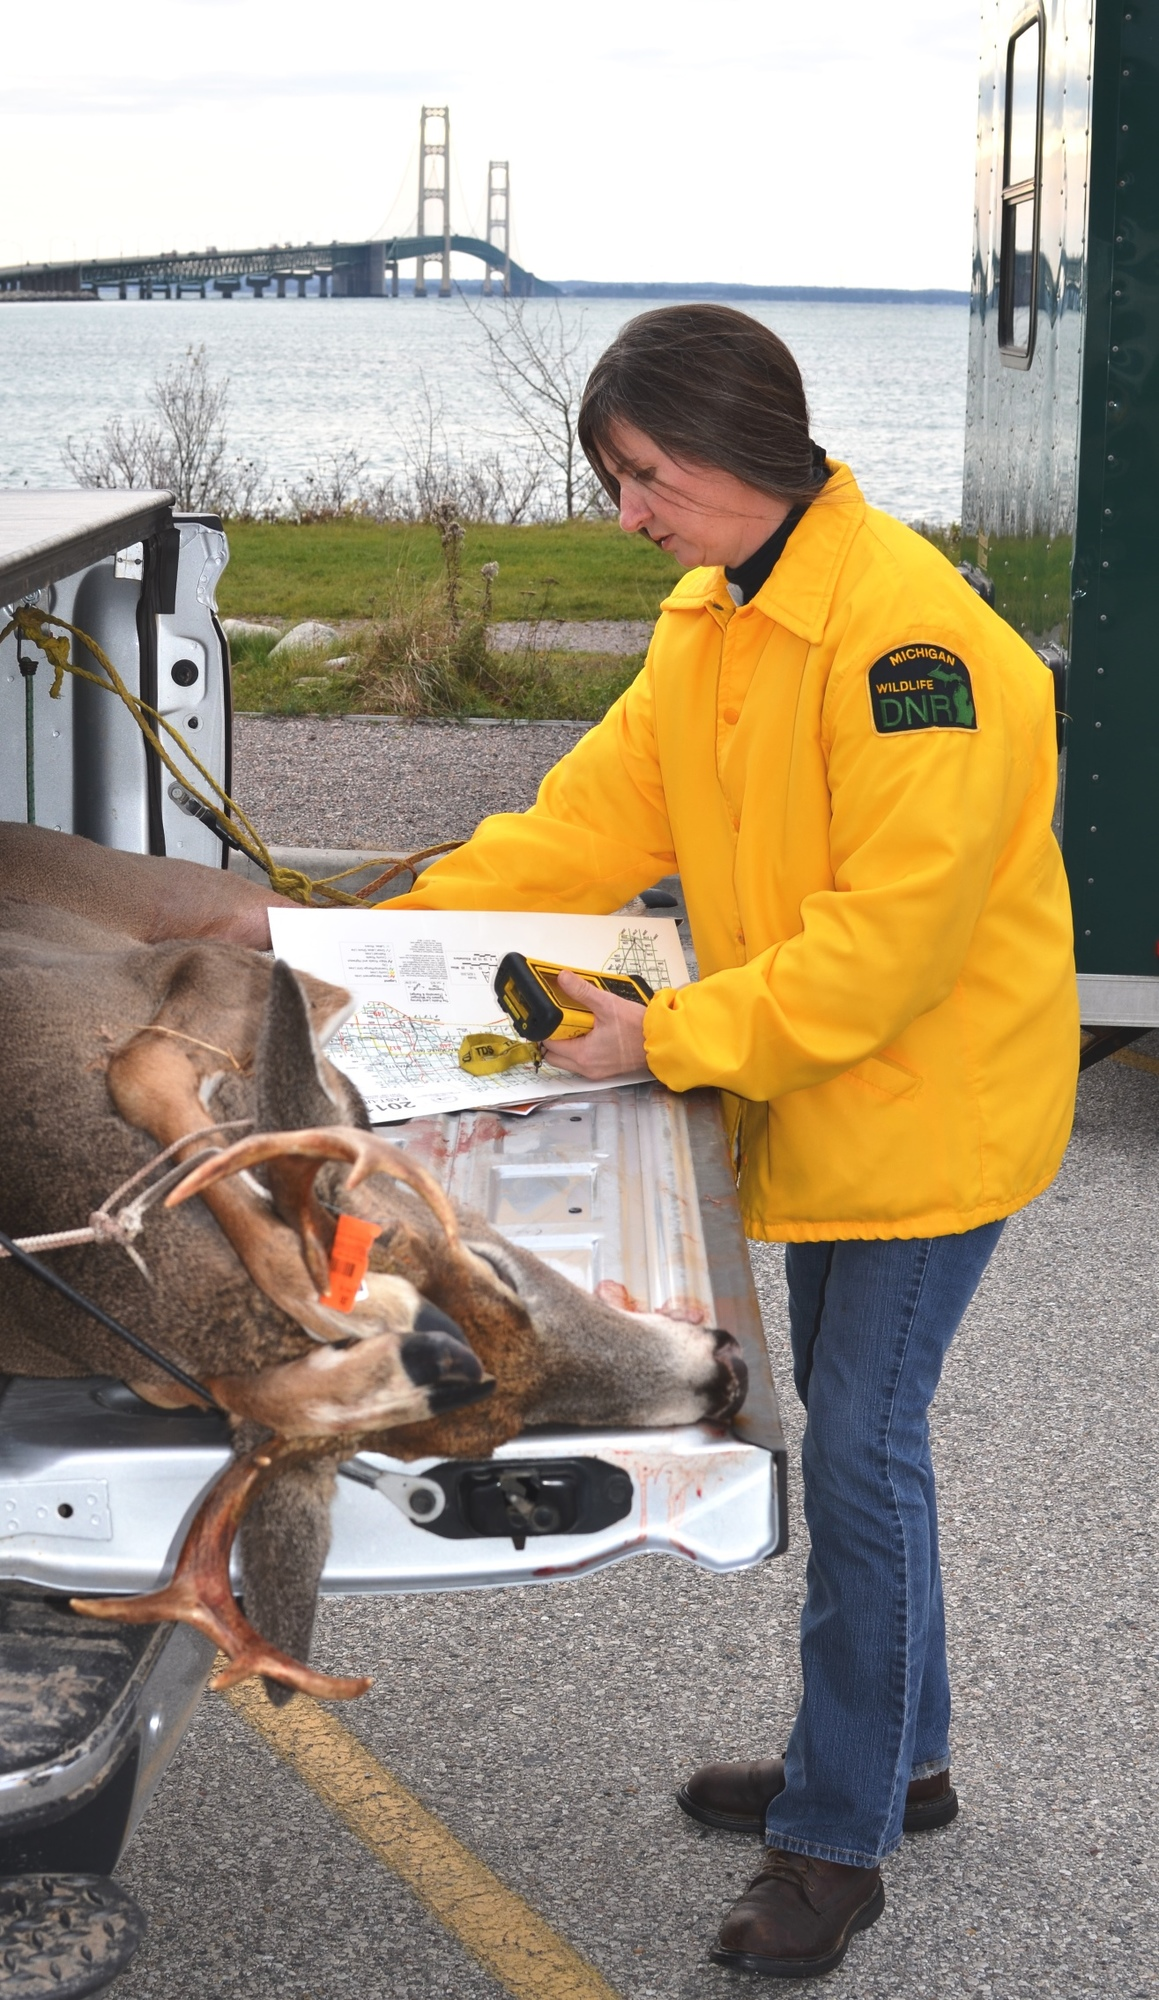 Sherry McKinnon, DNR wildlife ecologist from the Newberry office, checks in a buck at Bridge View Park in St. Ignace.